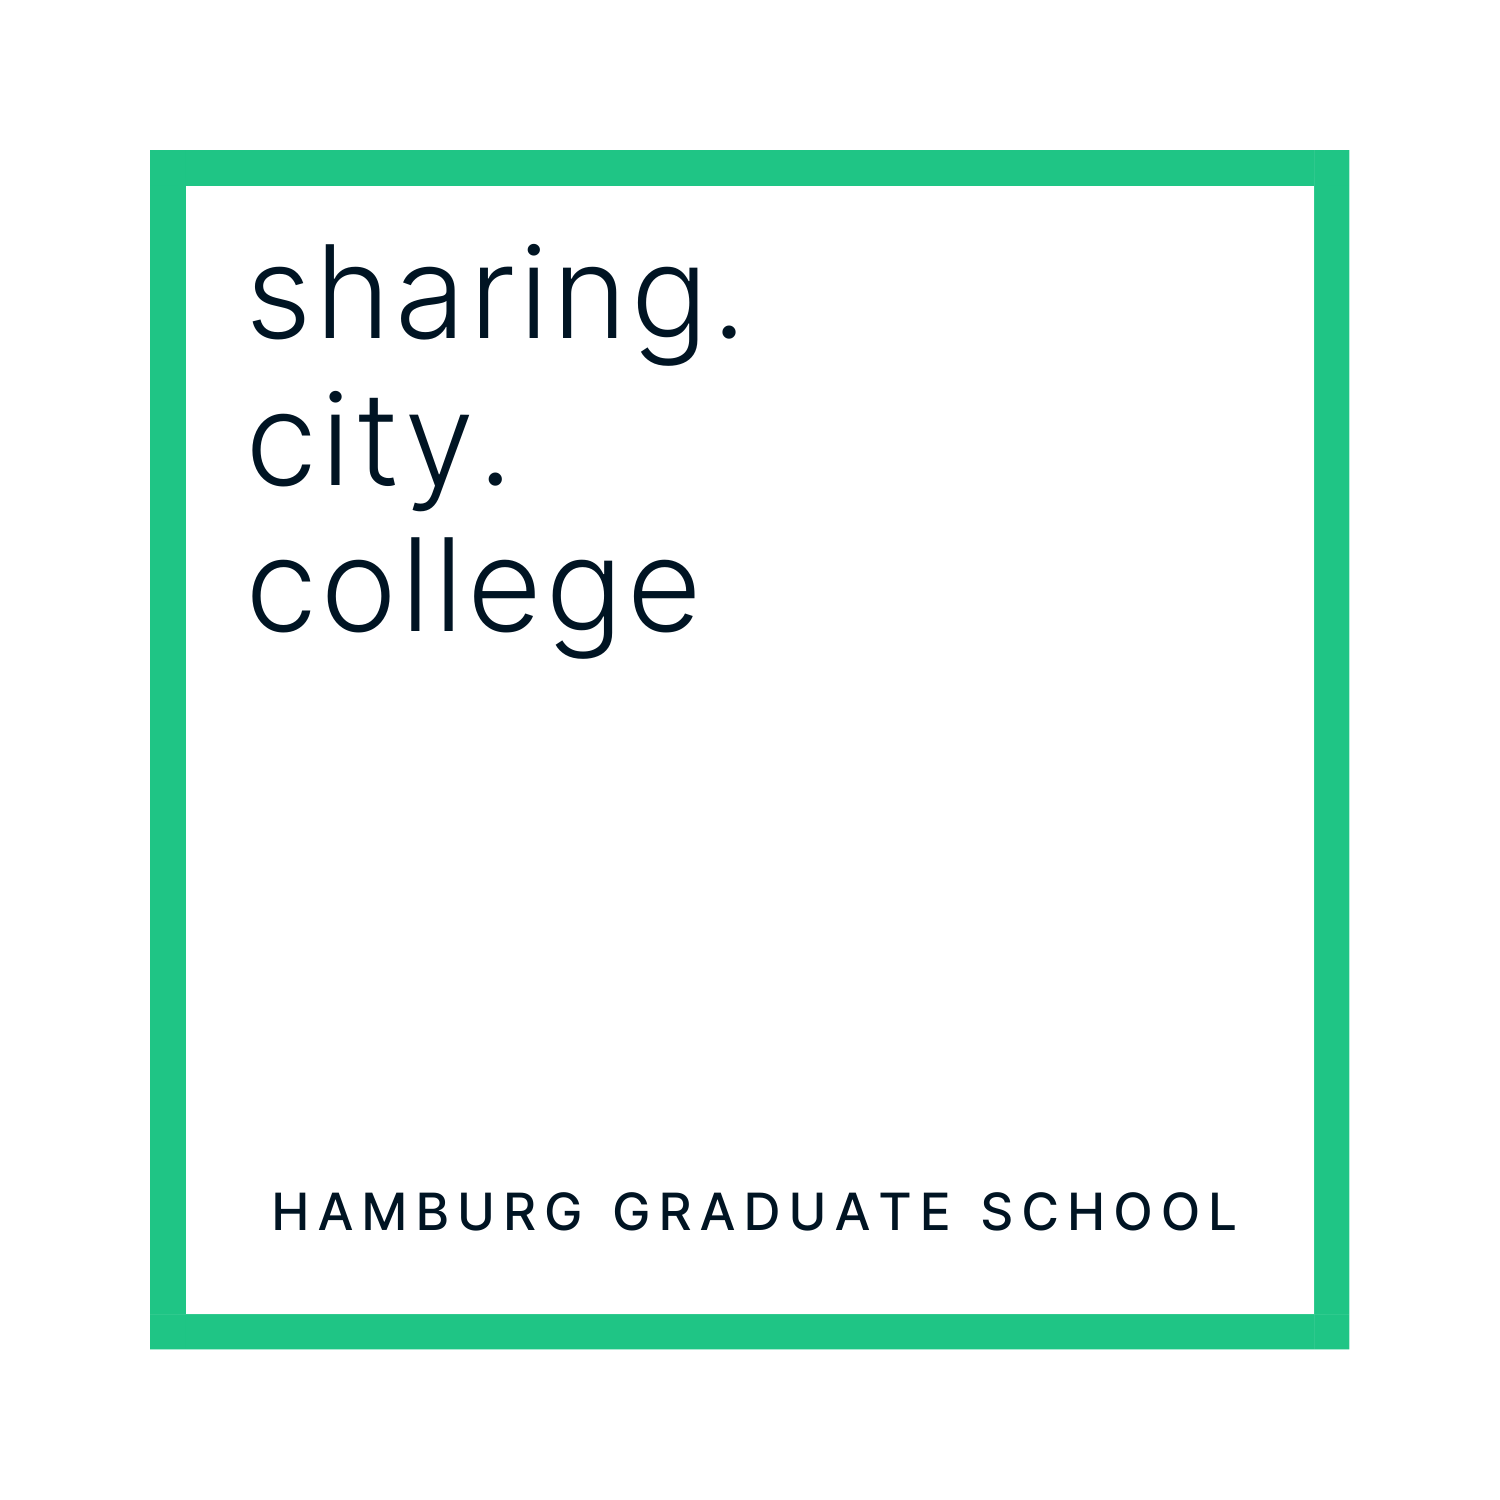 Logo des sharing city college von ahoi digital